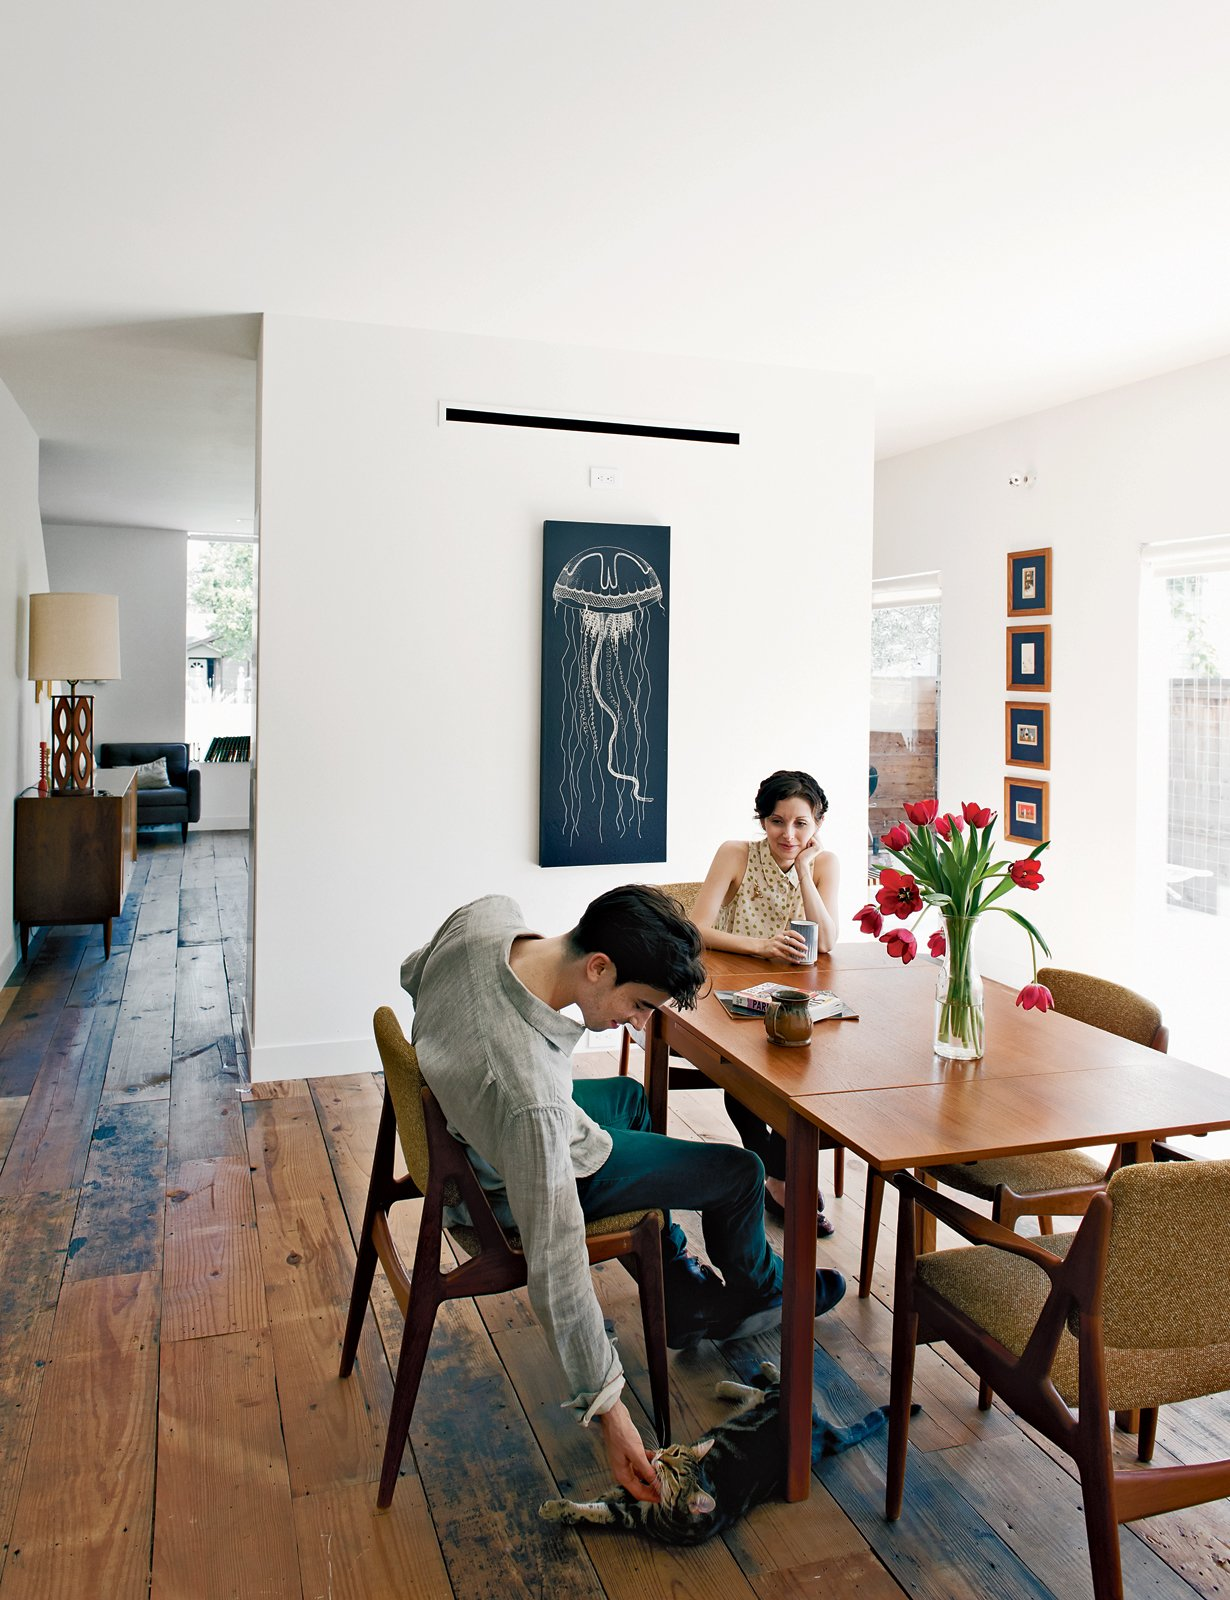 Joseph Walsh and Lauren Strongin, seen here in their dining room, have also kitted out their unit with vintage furniture.